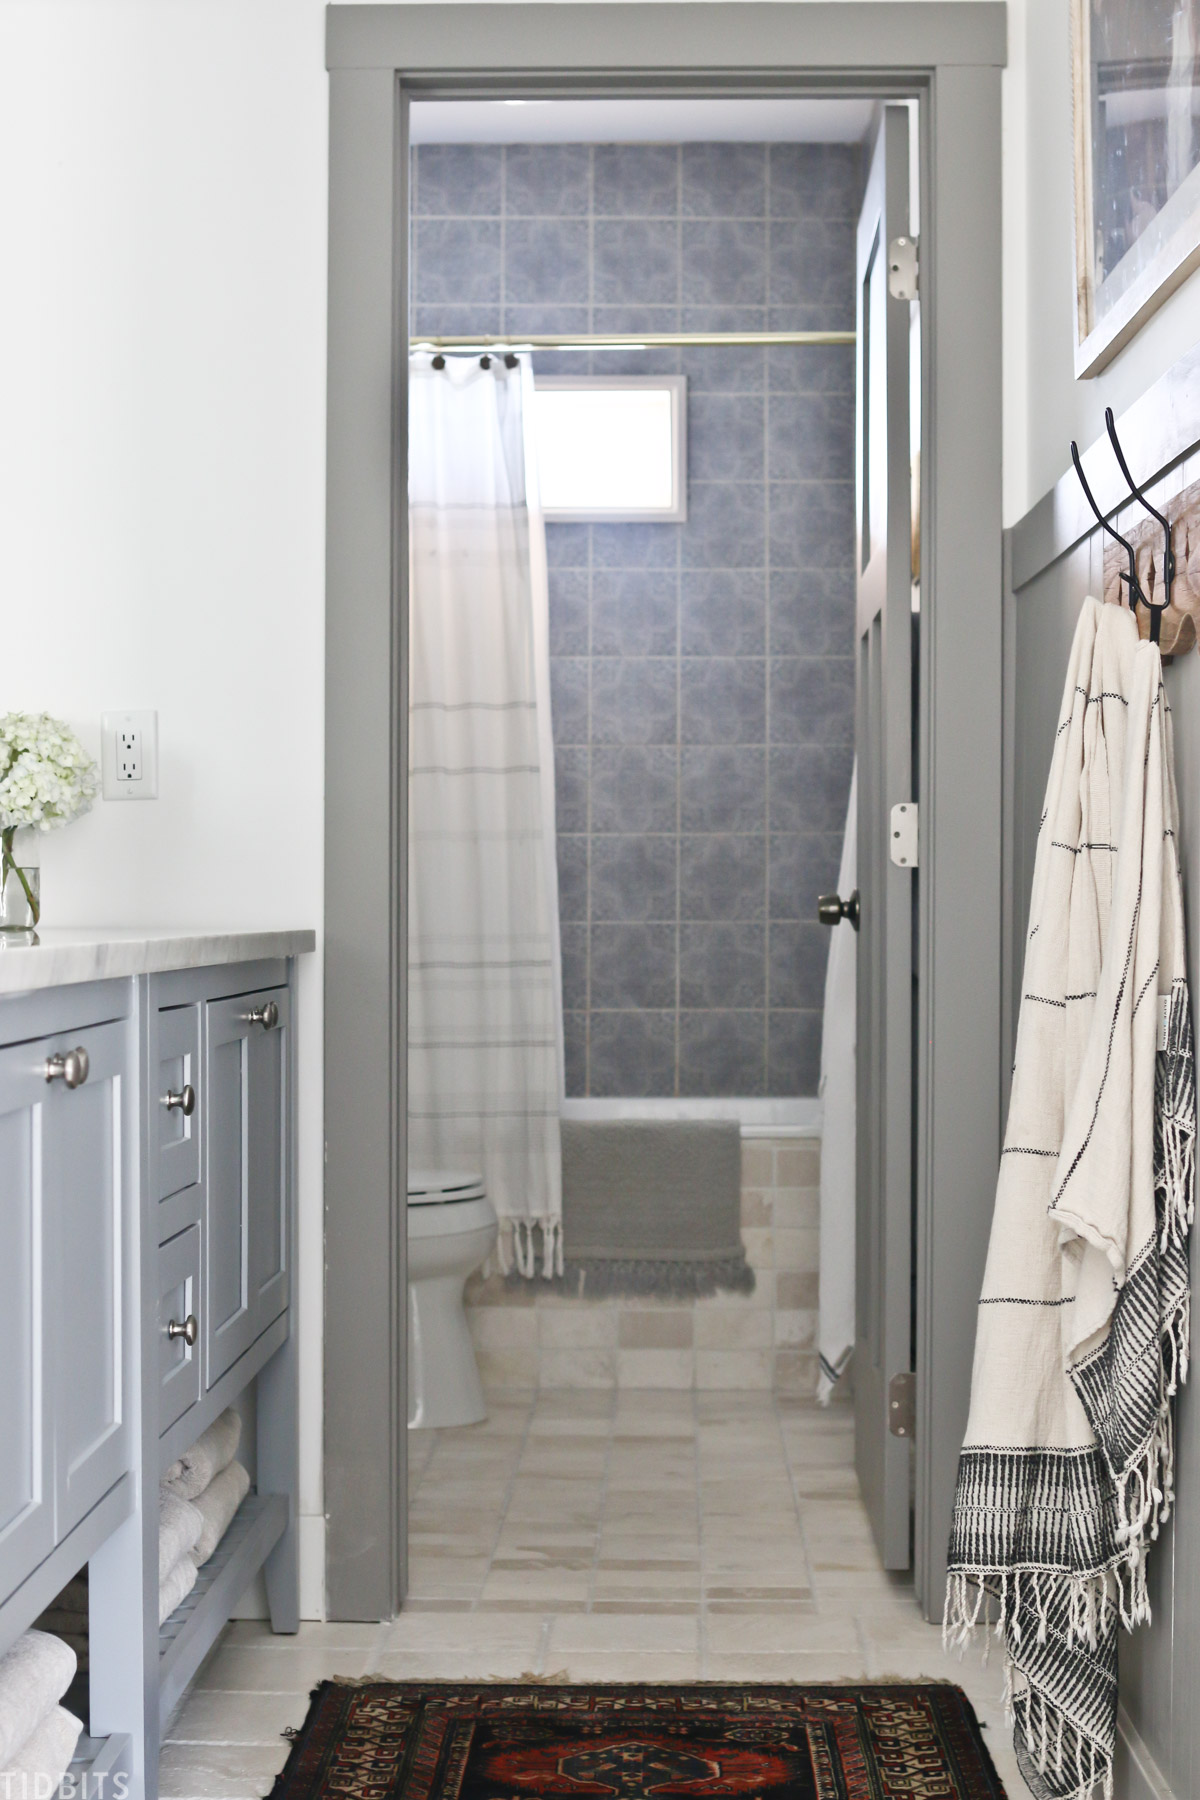 view of doorway in split bathroom that leads to shower and toilet